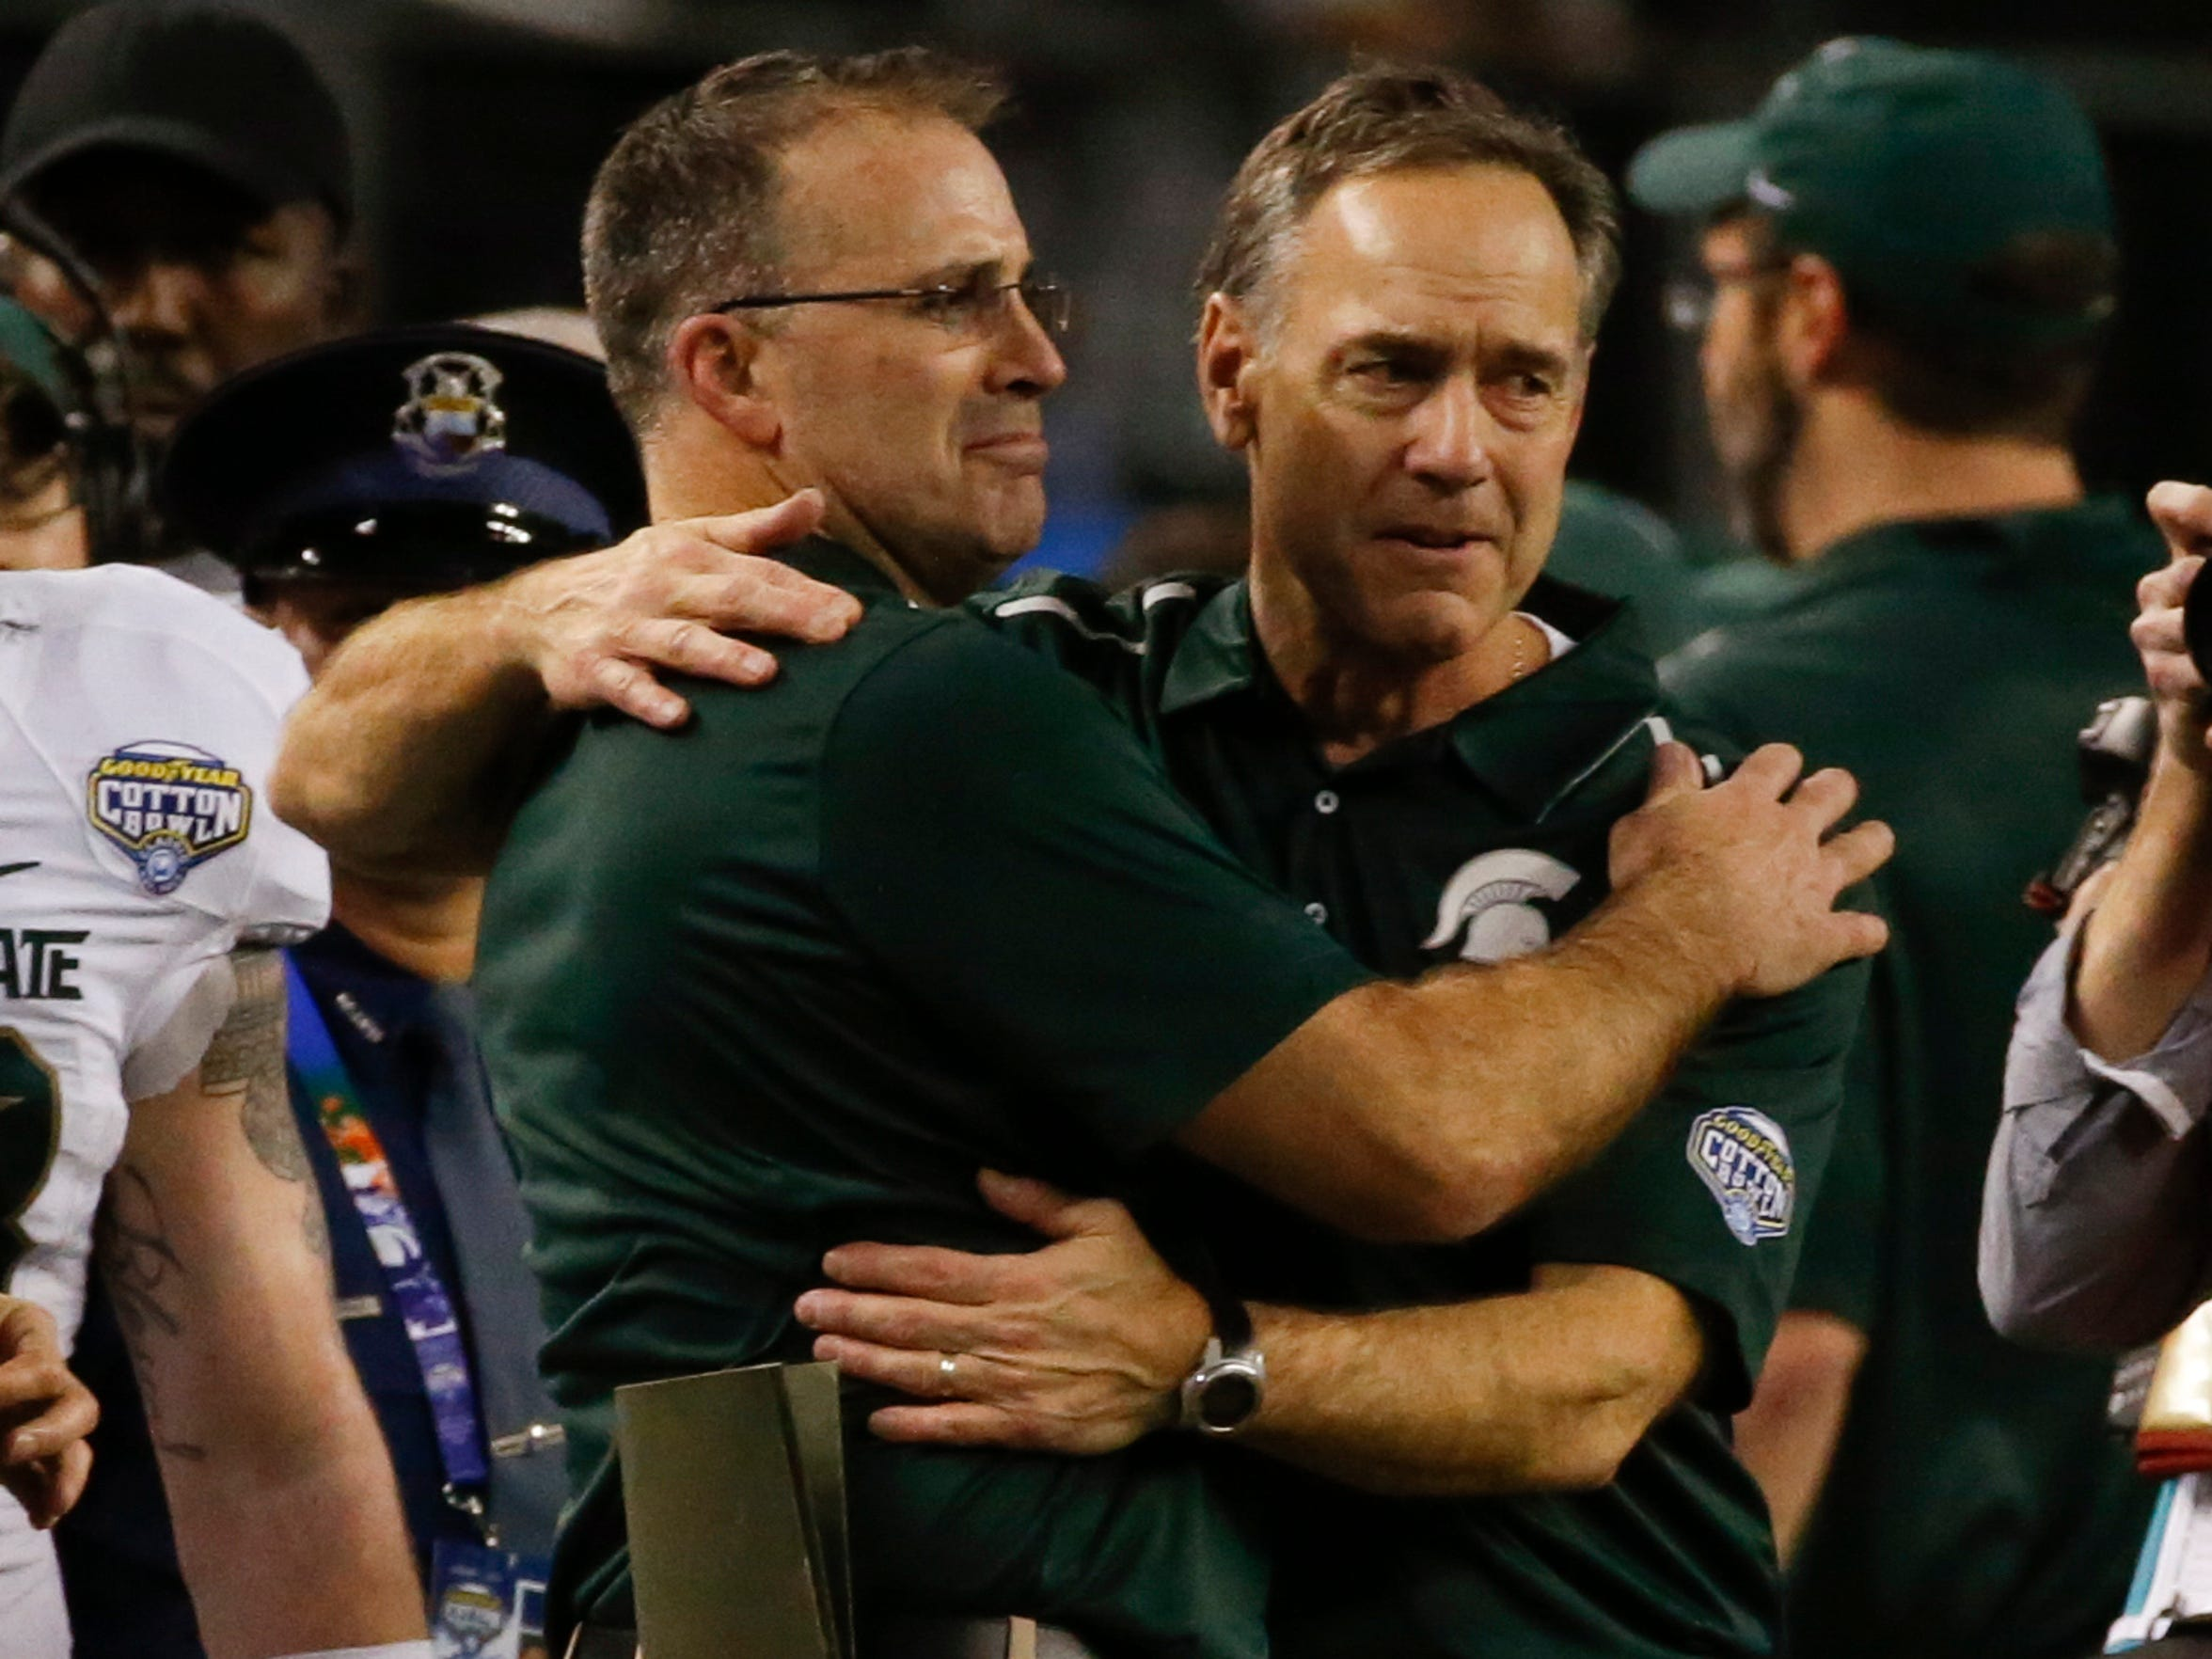 Pat Narduzzi and Mark Dantonio in their final game as co-workers on Jan. 1.